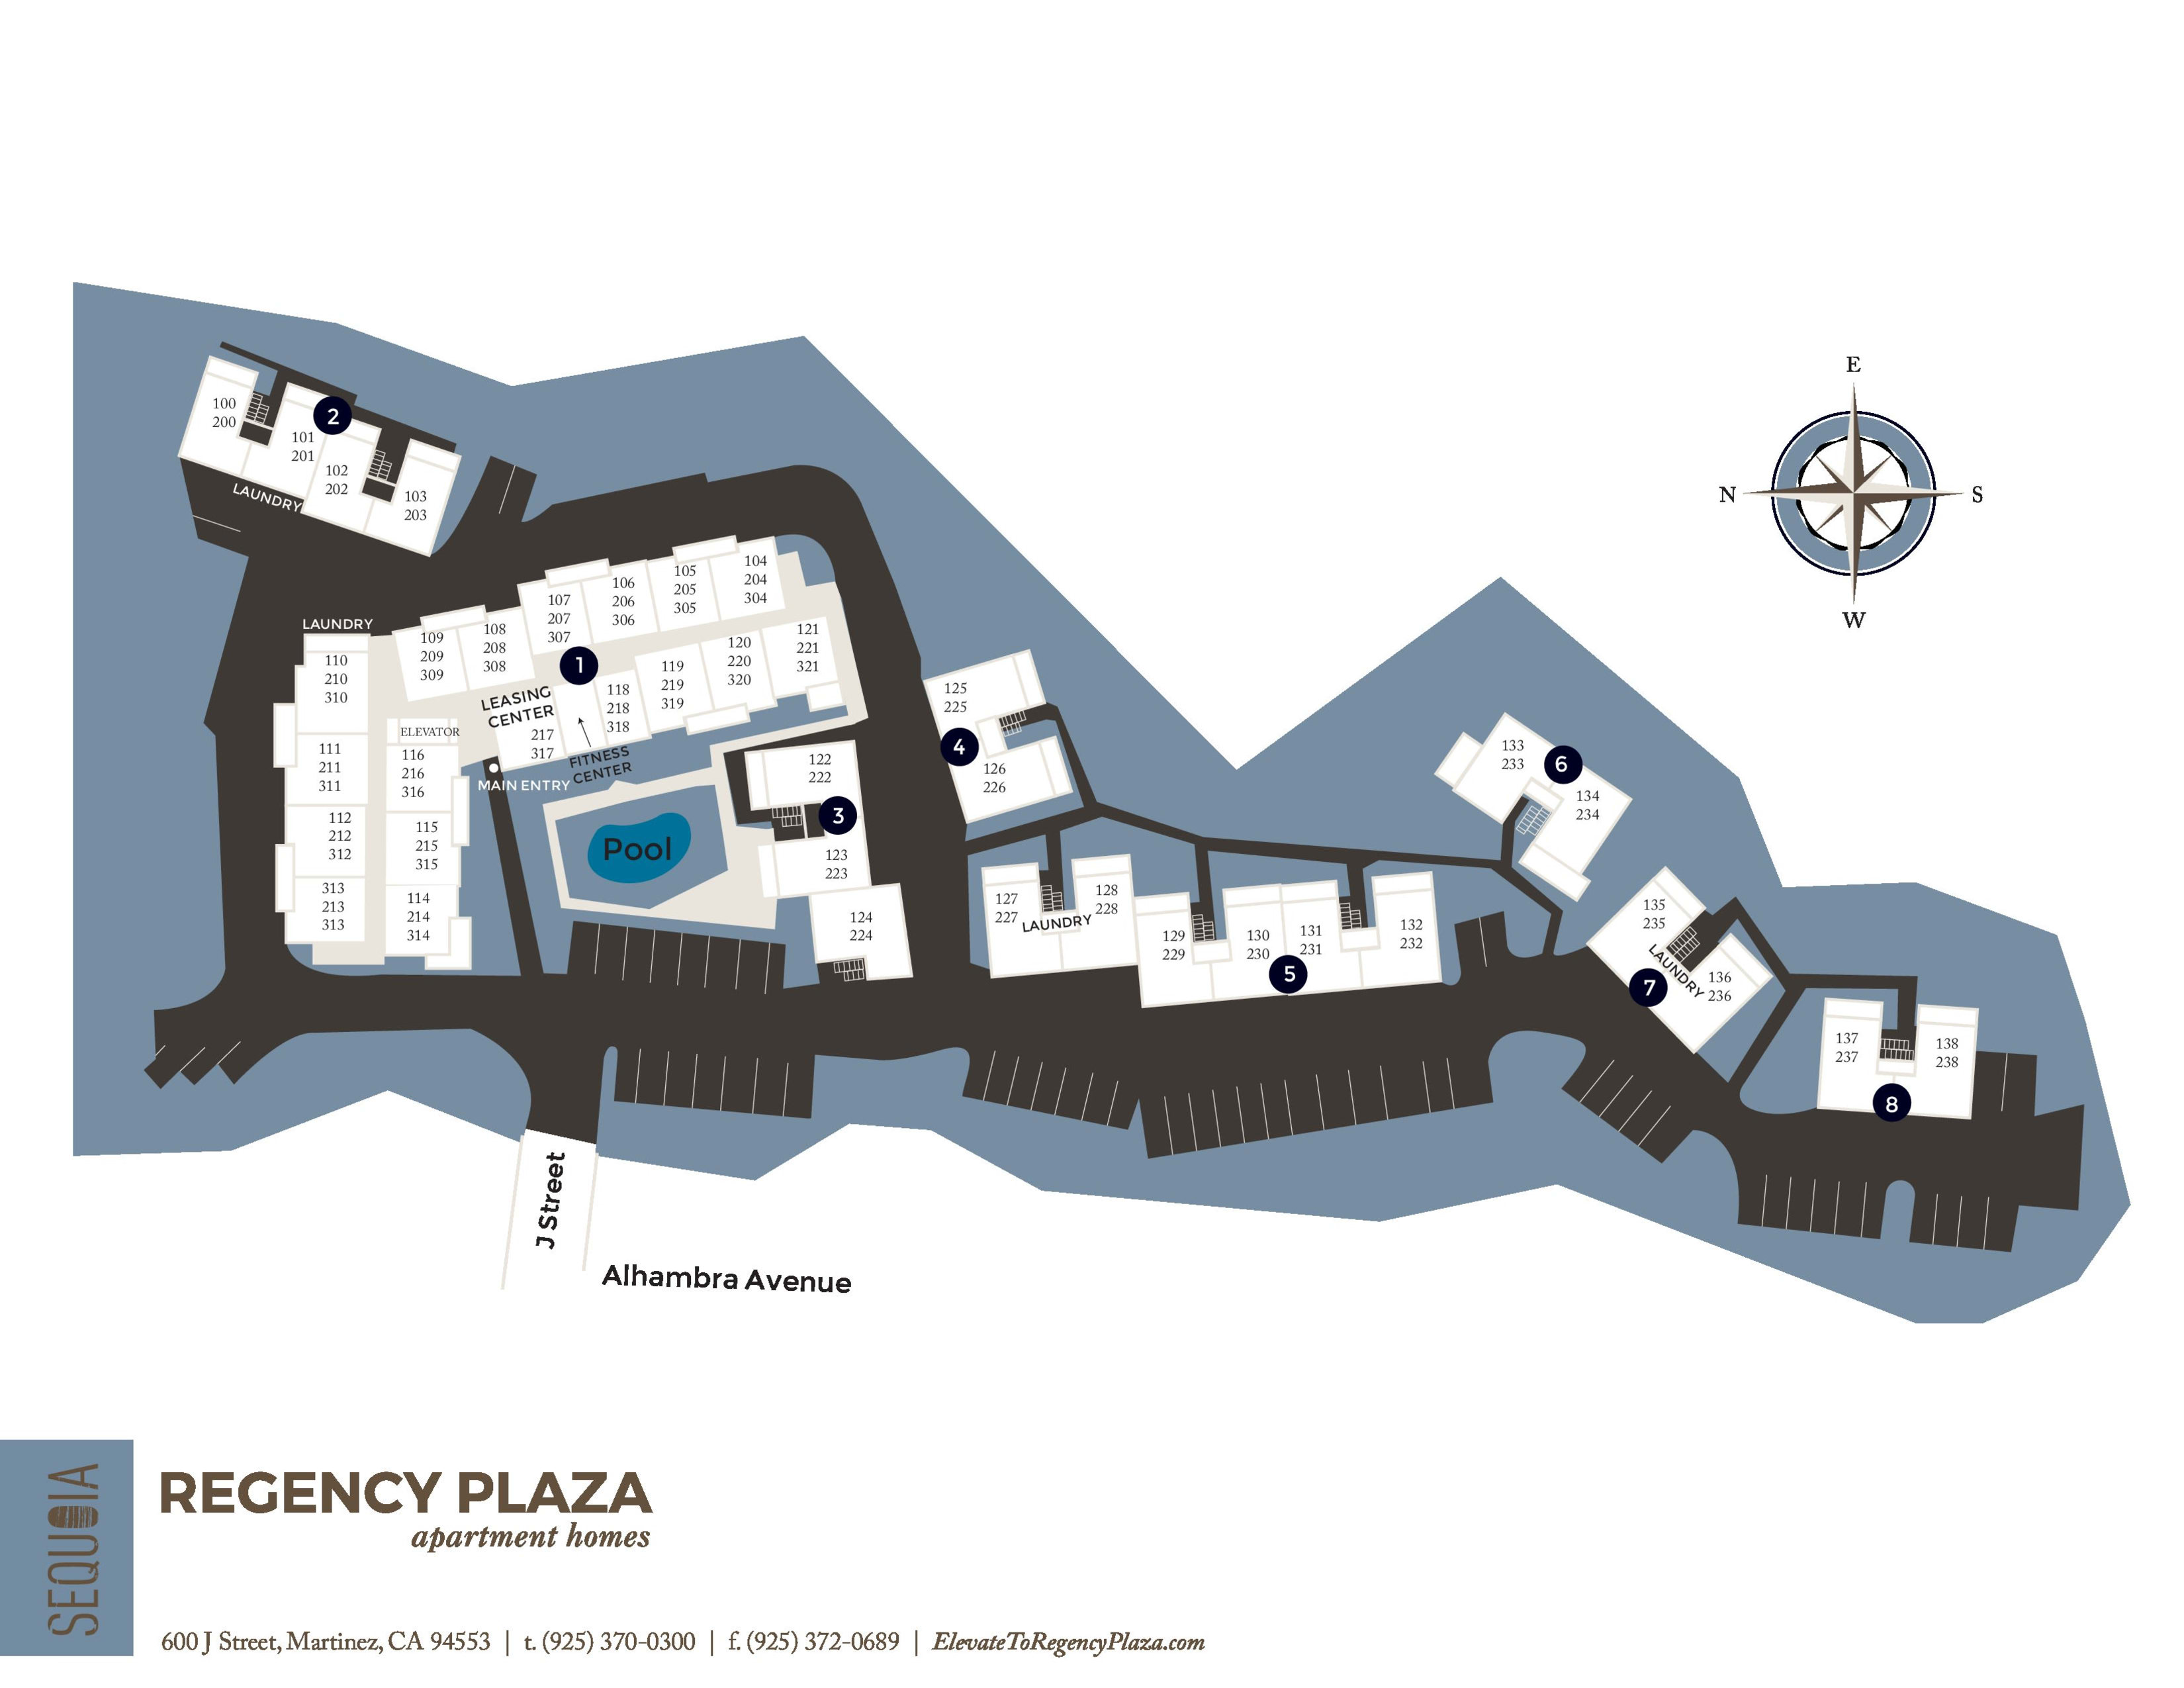 Community site map for Regency Plaza Apartment Homes in Martinez, California